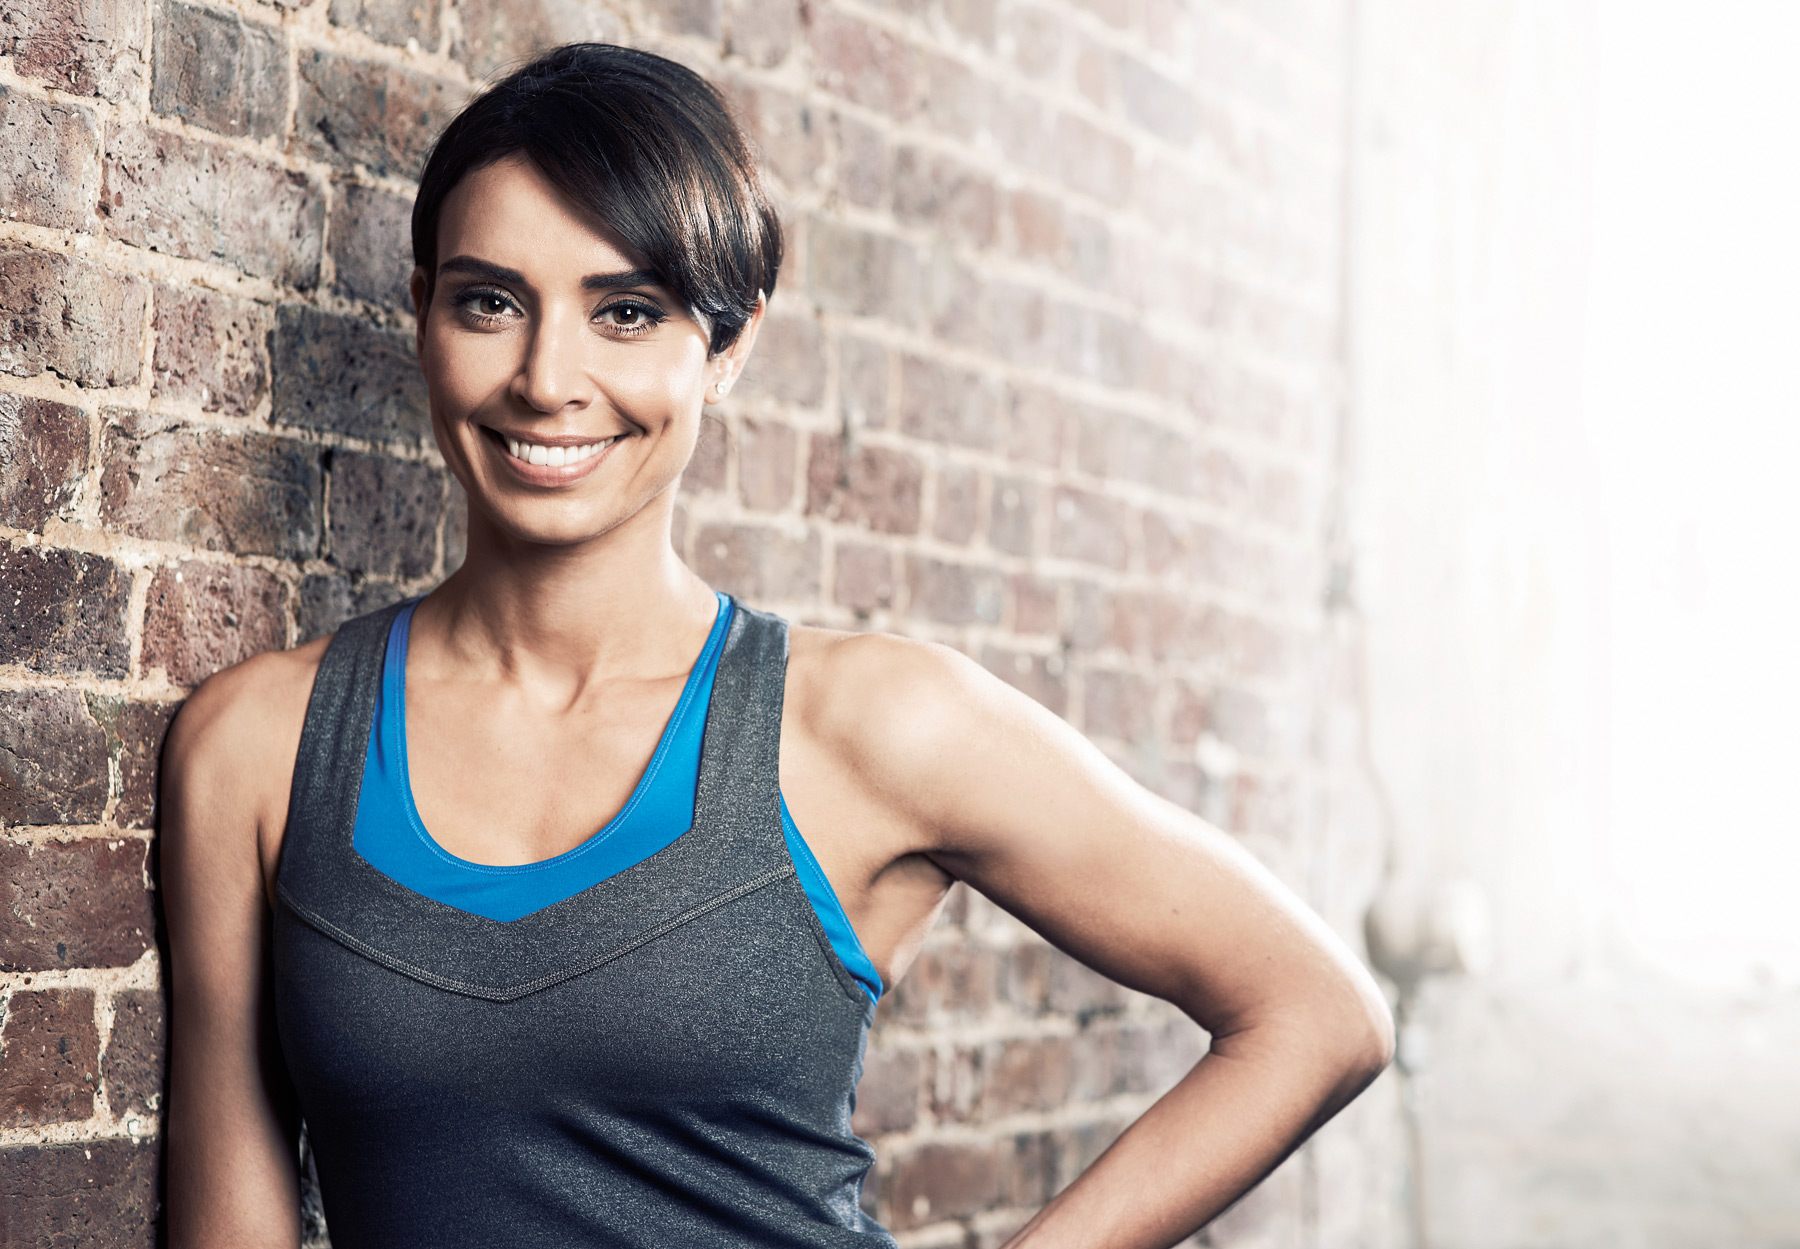 Christine Bleakley photographed leaning against a brick wall in a gym